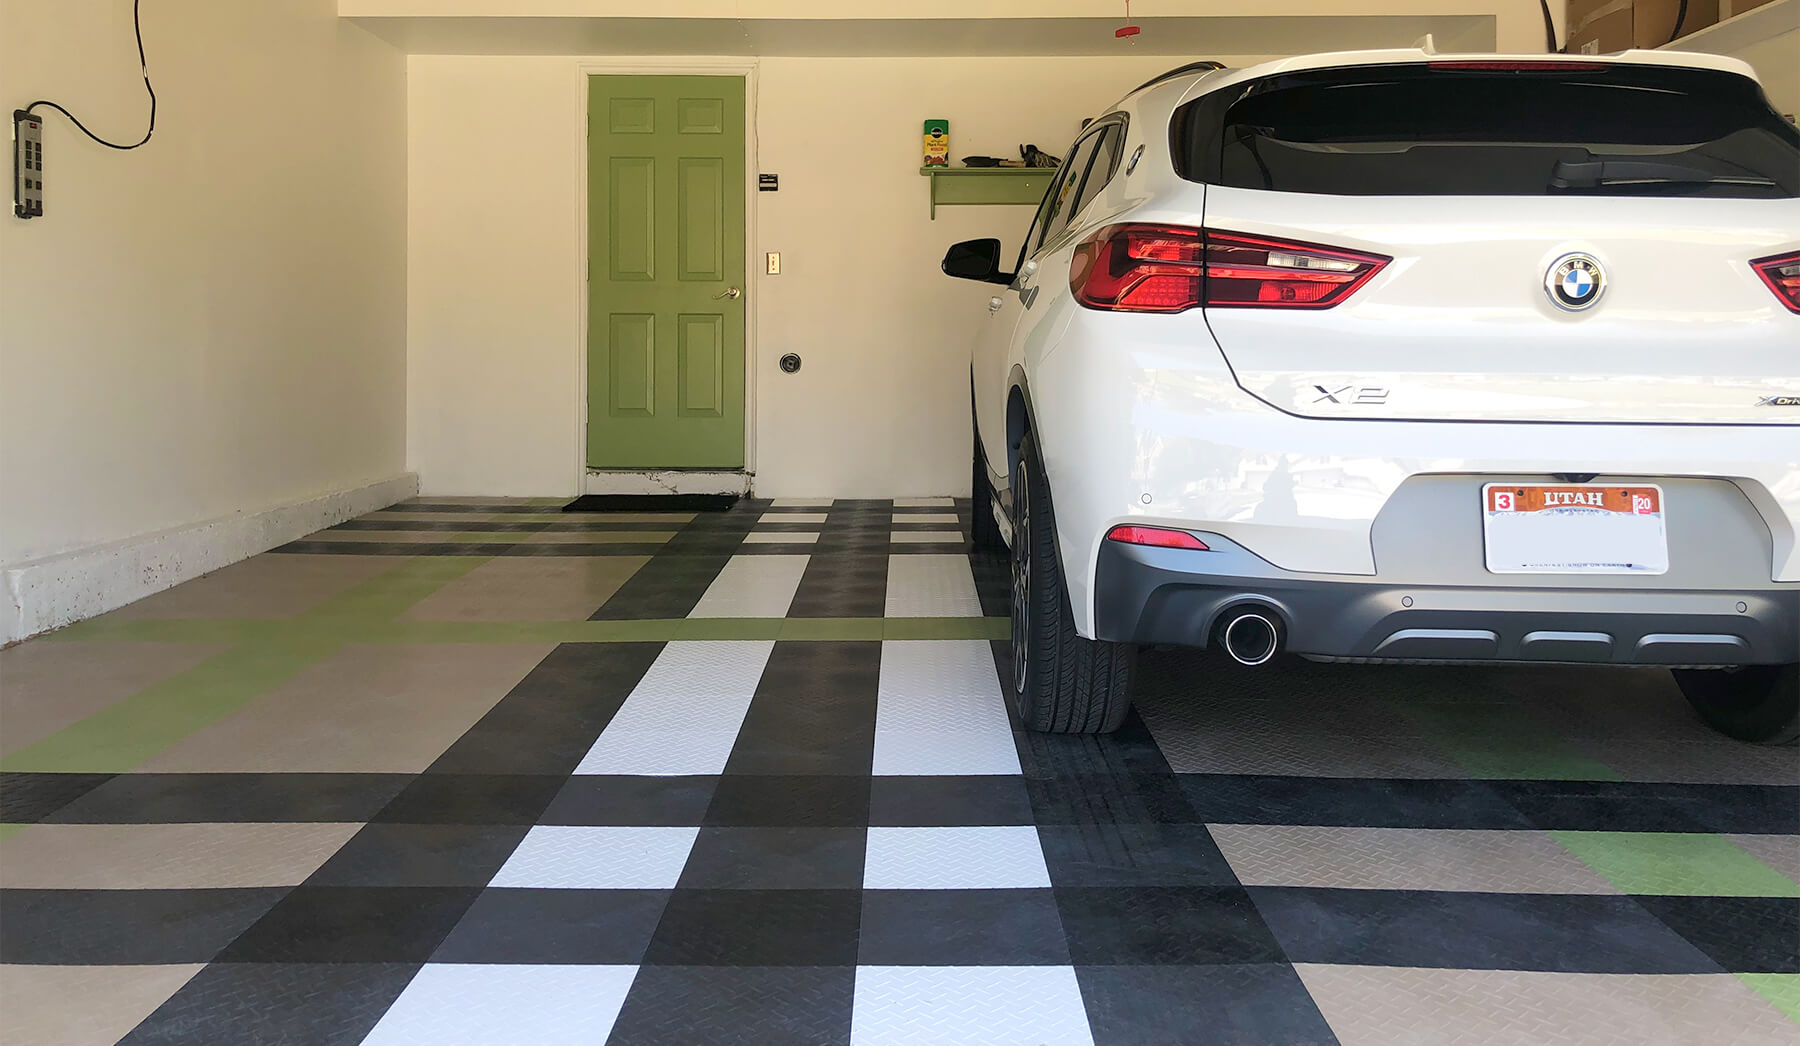 DIY Flooring: RaceDeck Diamond multicolor design